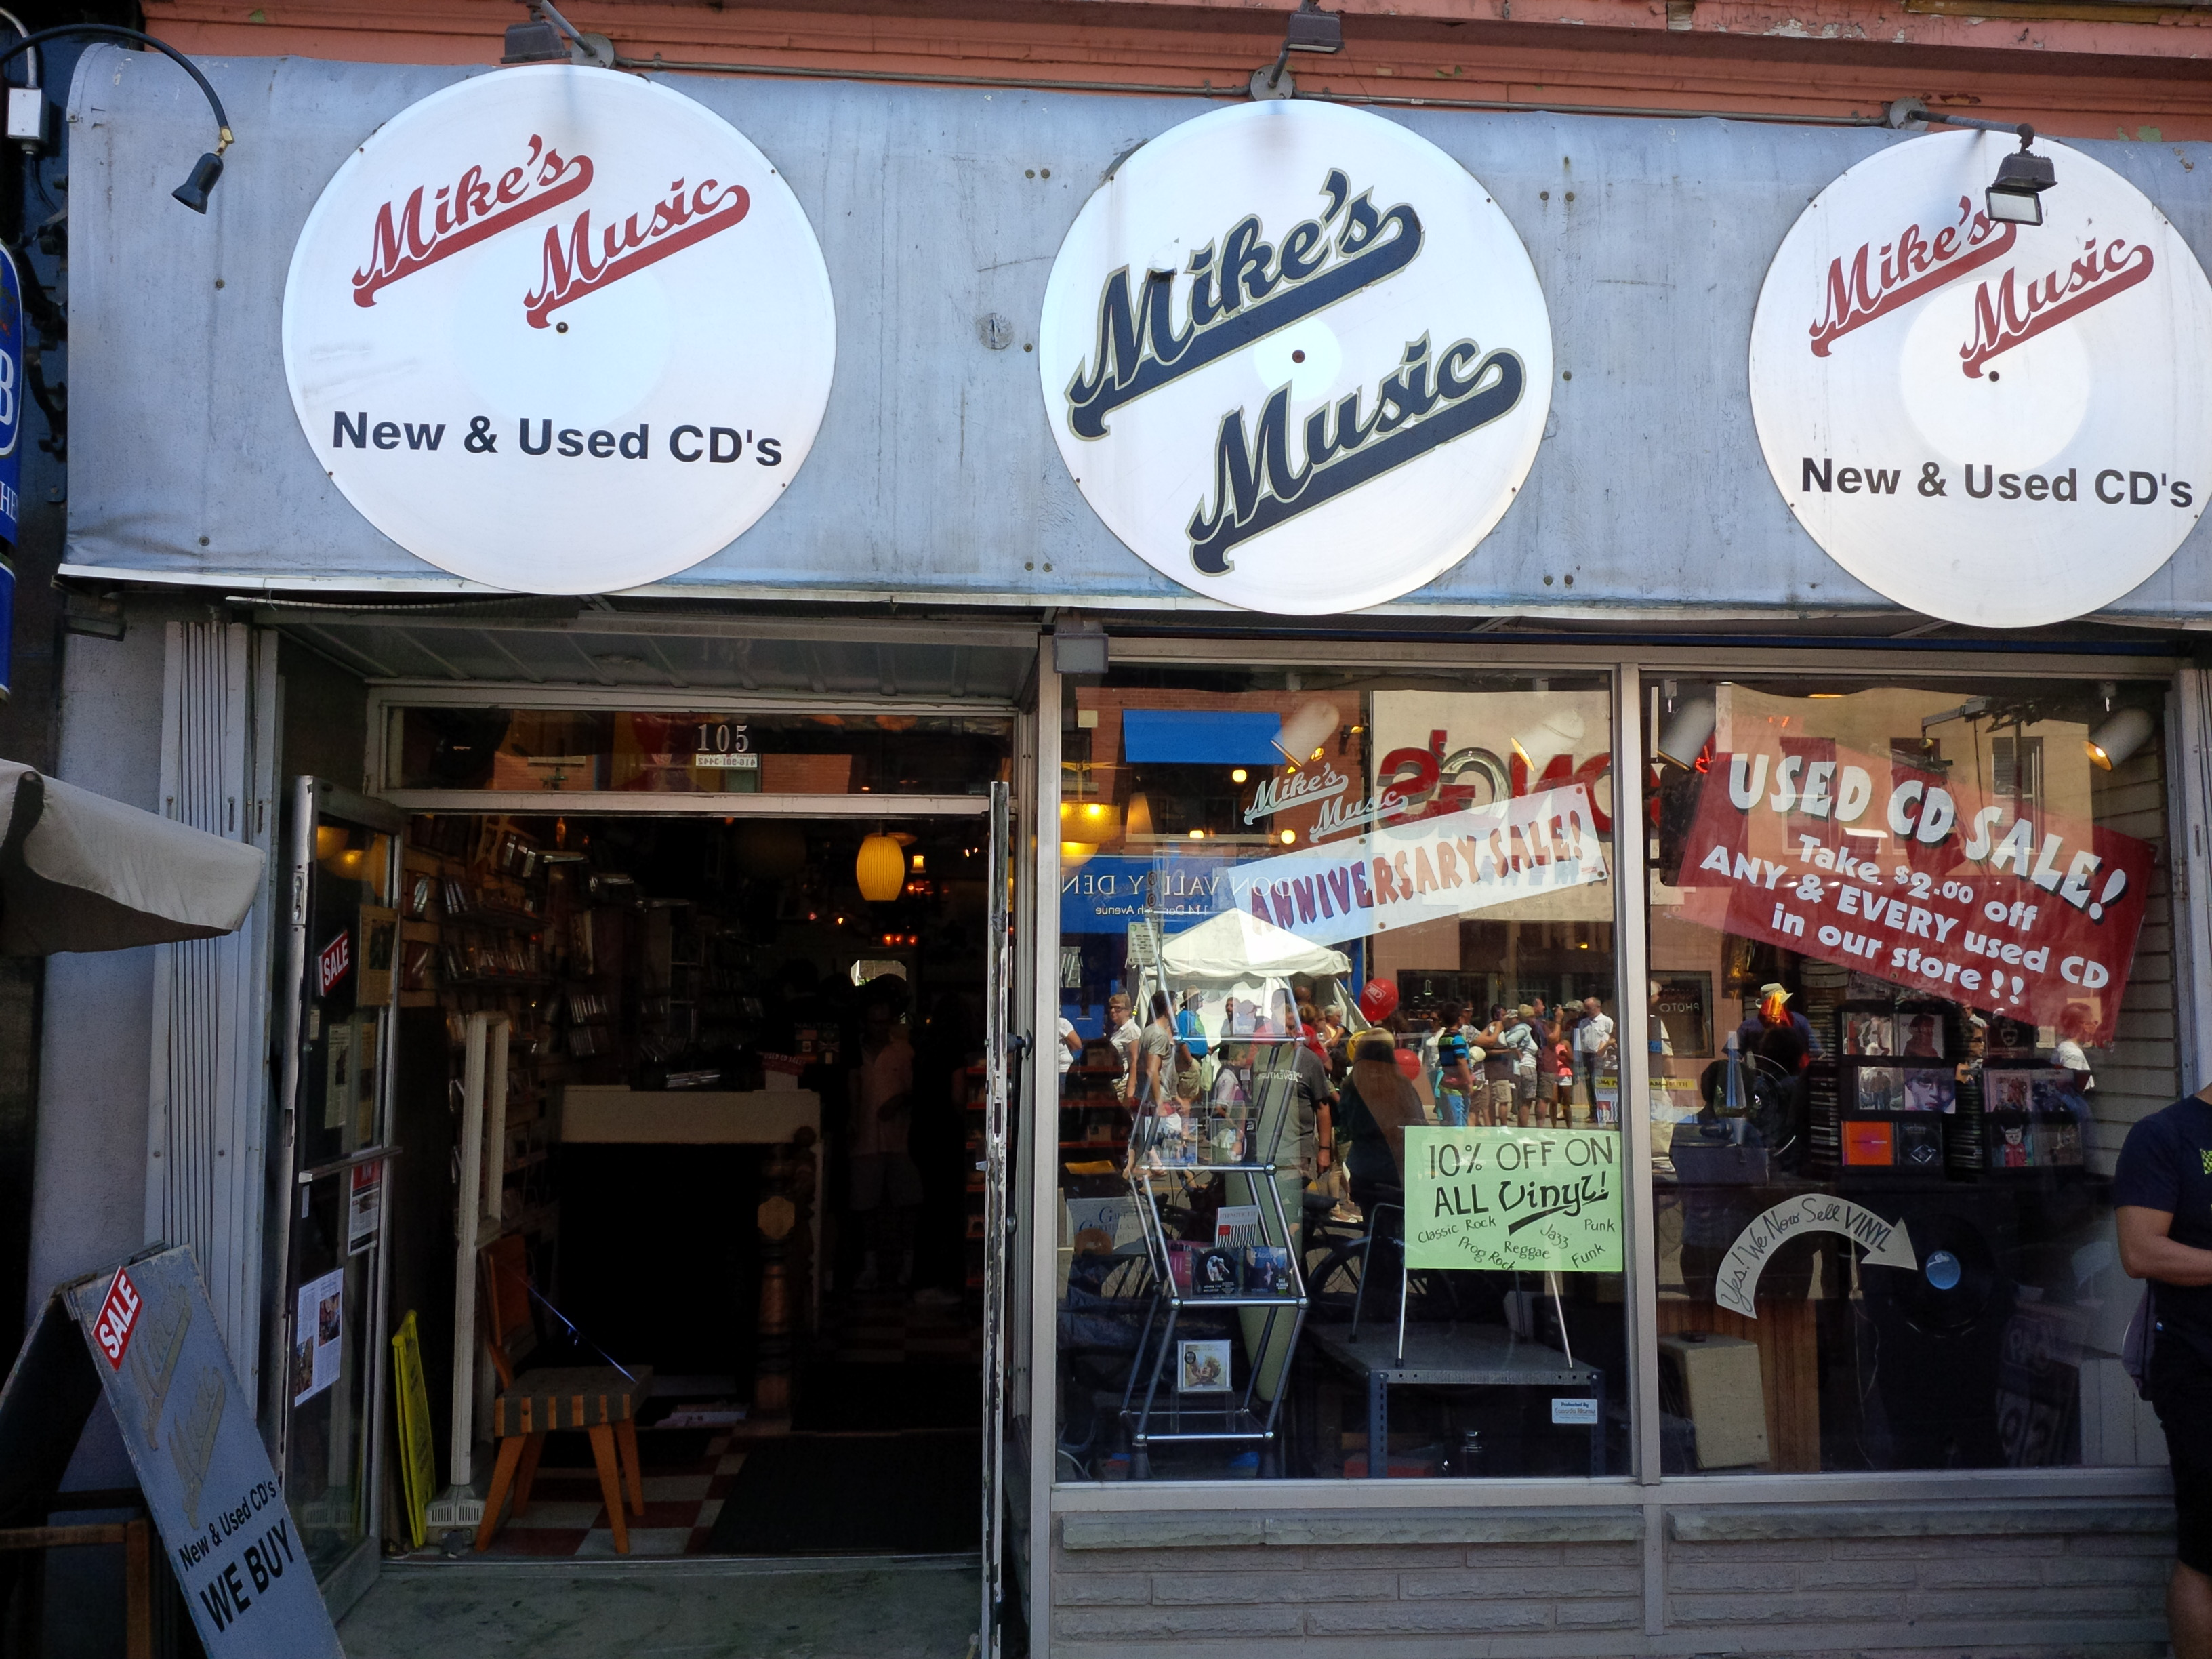 Toronto Record Store, Vinyl, CDs, DVDs, Antiques | Mike's